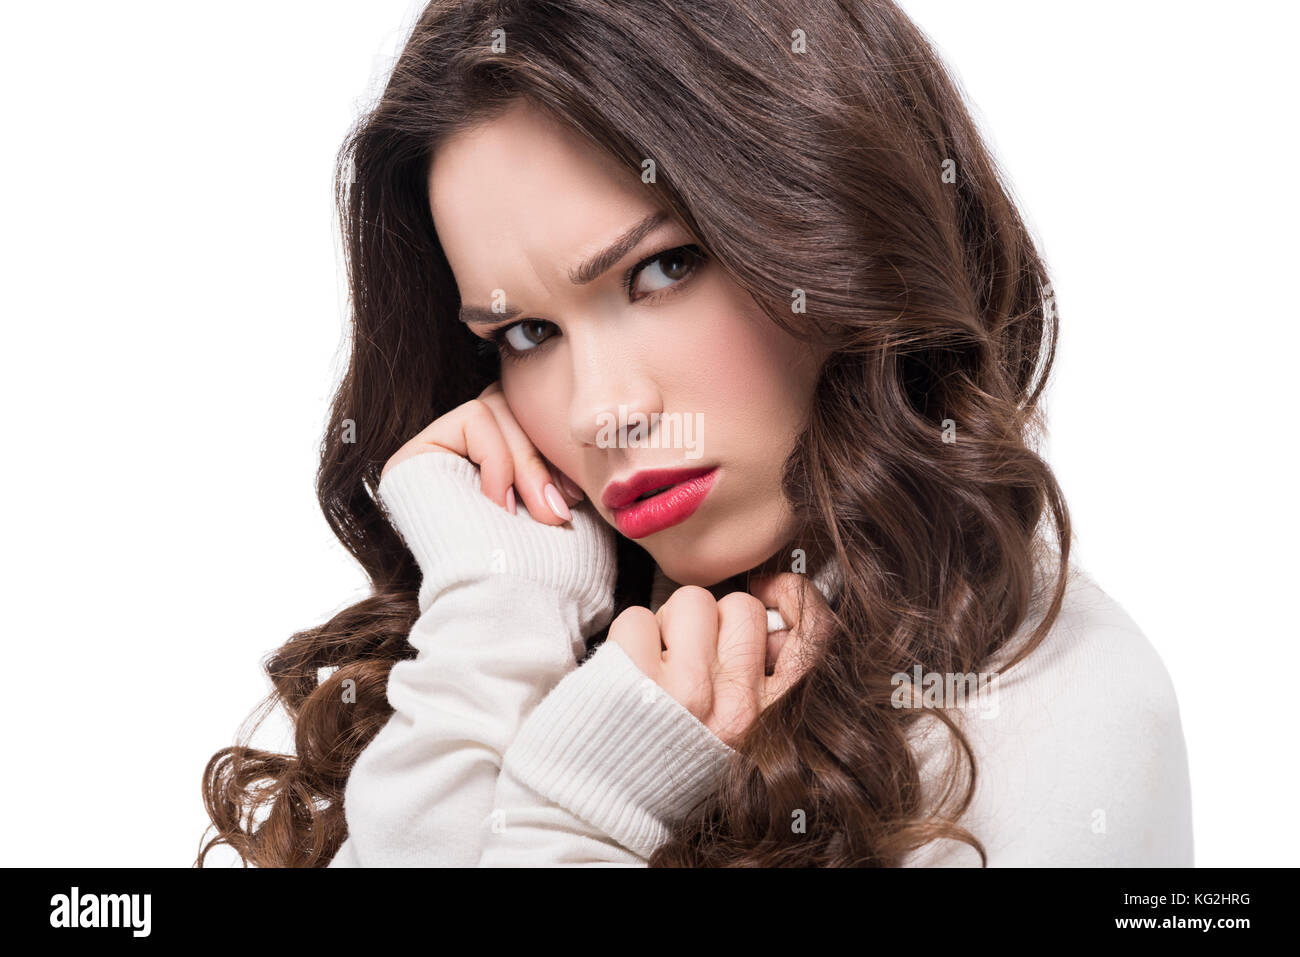 dissatisfied woman with red lips - Stock Image